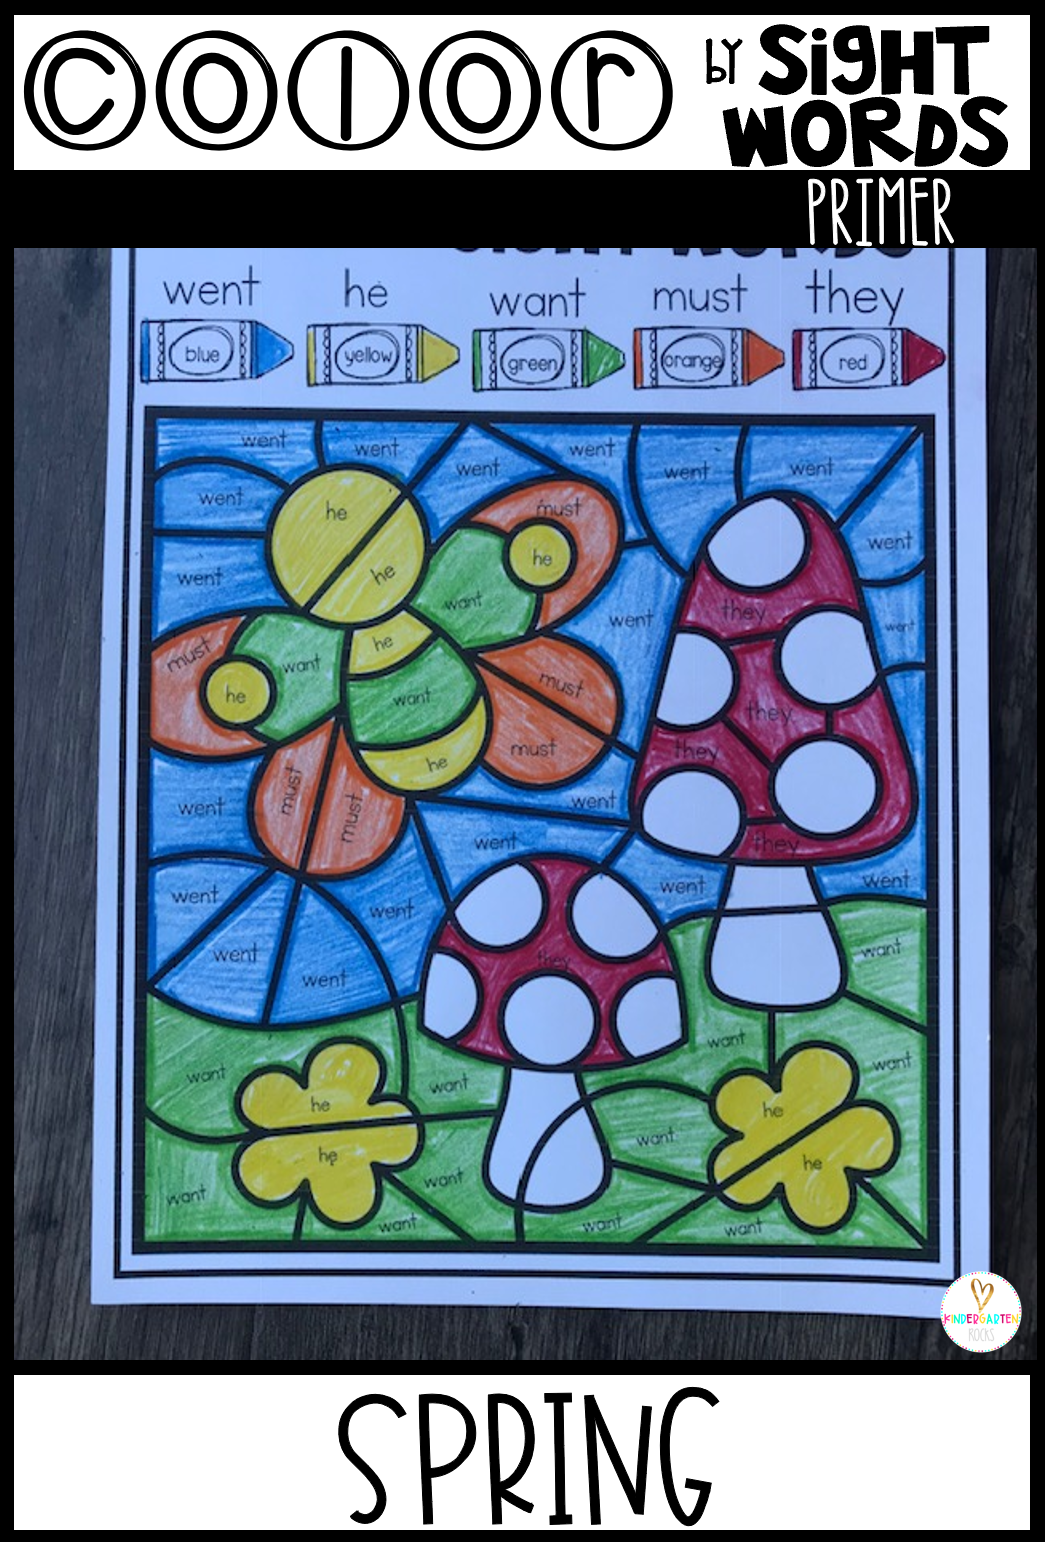 Spring Sight Word Activities Color by Sight Words Primer is a fun and engaging way to practice sight words with your kindergarten and first grade students. This set has 5 EDITABLE pages. Students will work on sight word identification and spelling all in one activity. Color by sight word activities are perfect for small groups, independent work, morning work, homework, homeschooling and reading intervention.